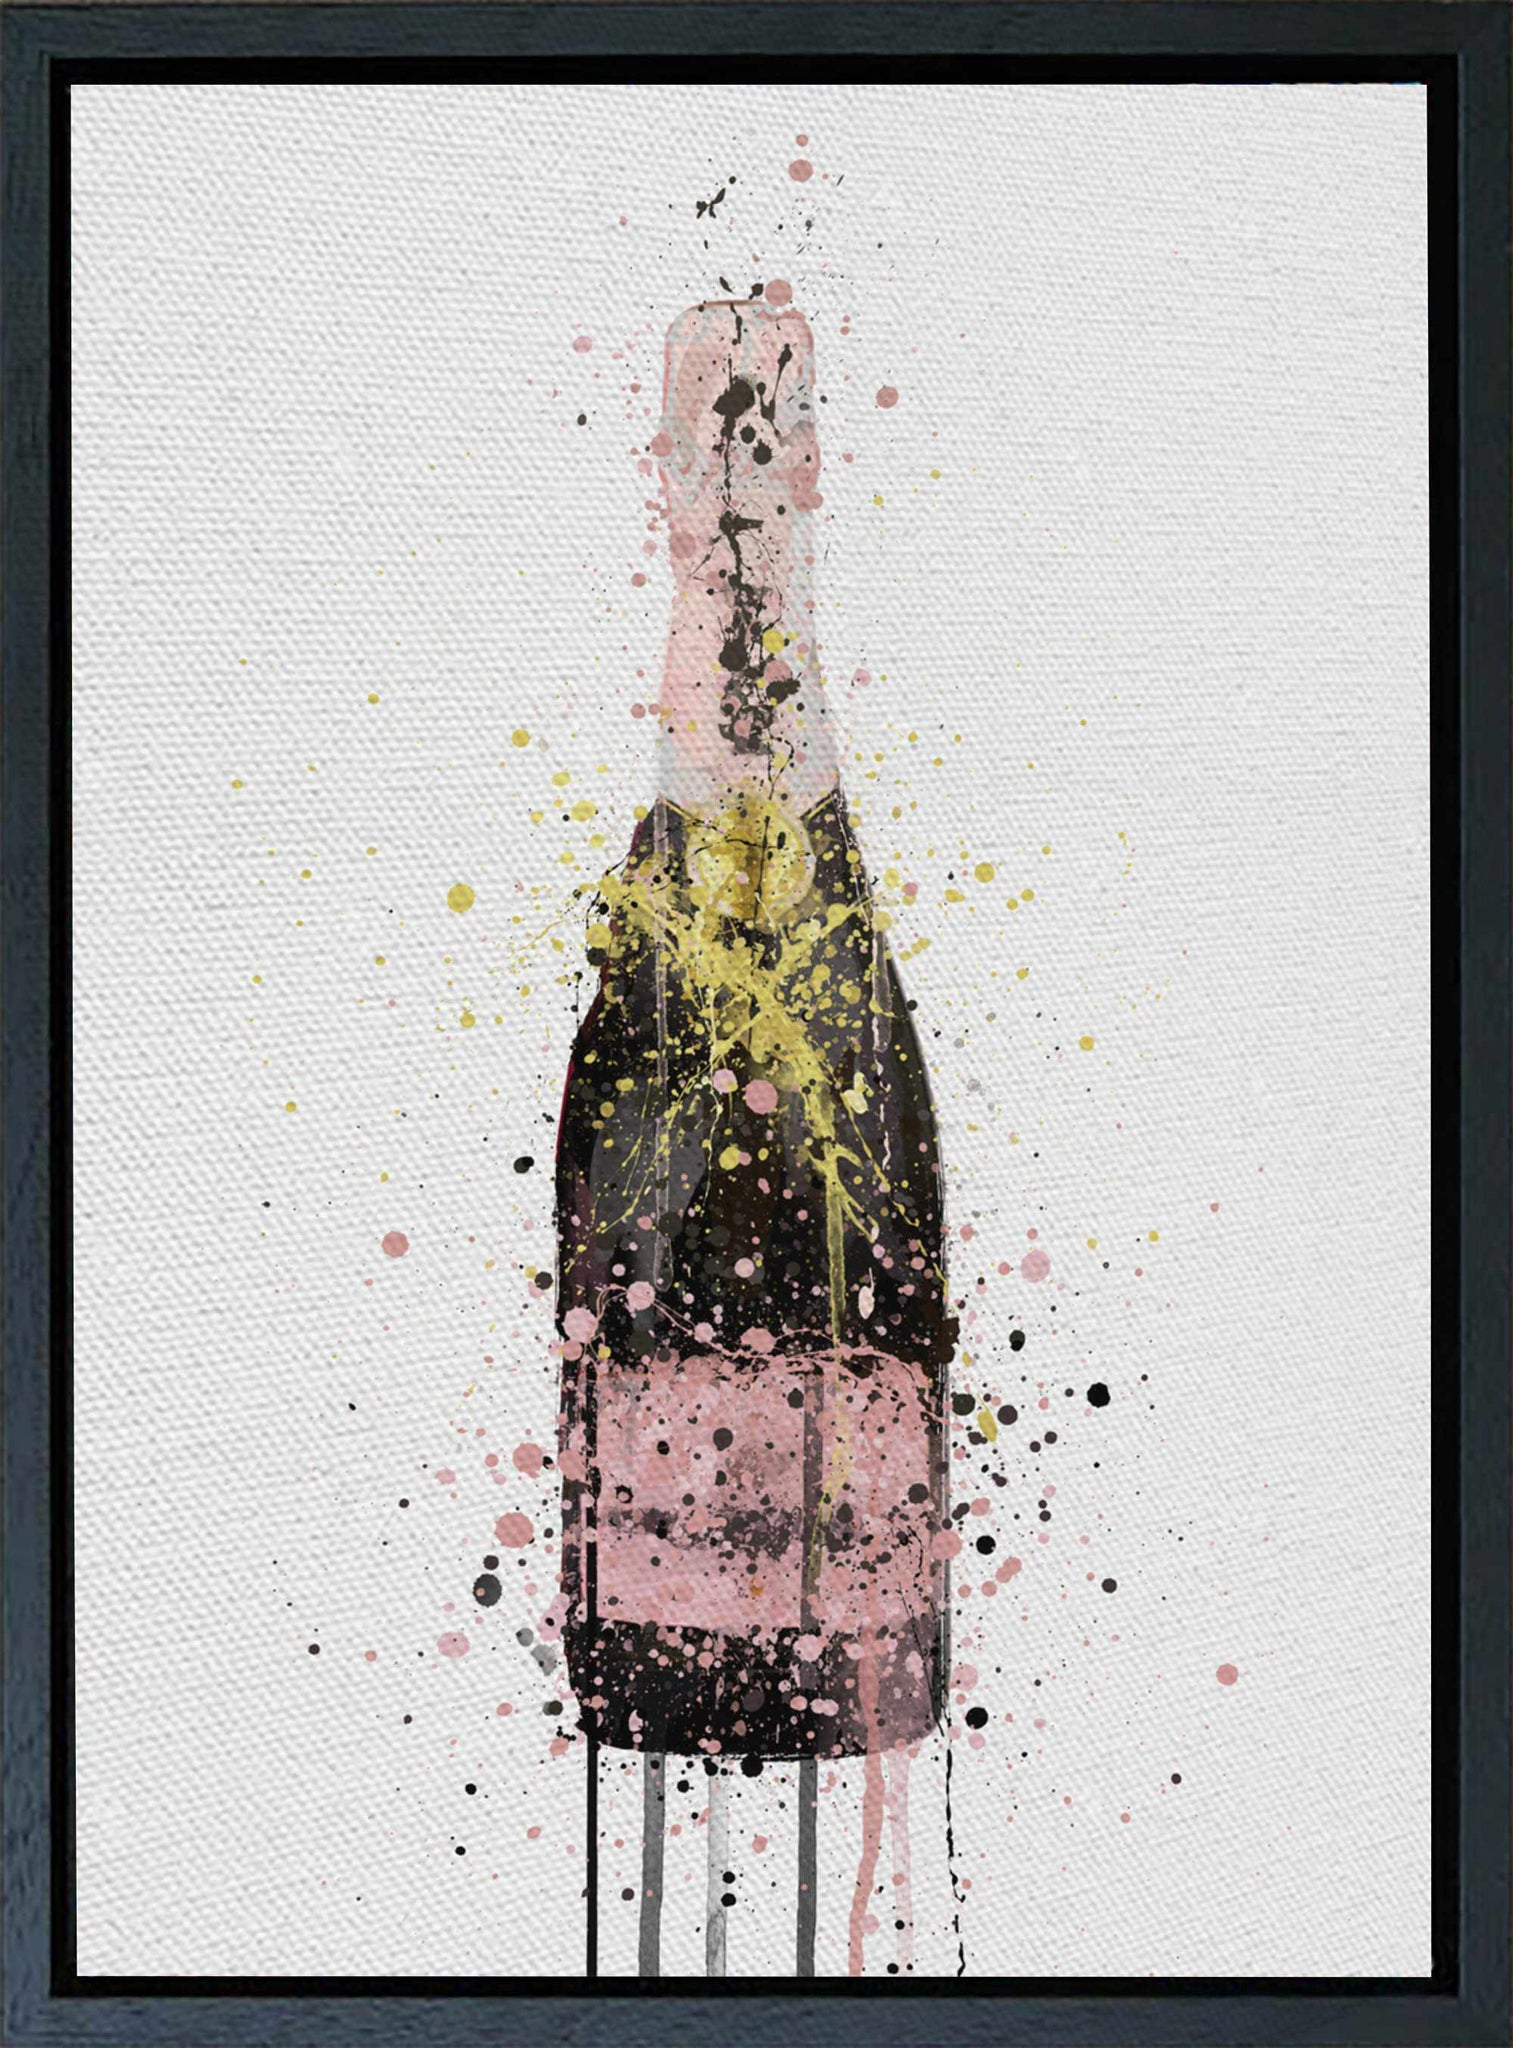 Premium Canvas Wall Art Print Champagne Bottle 'Pink'-We Love Prints